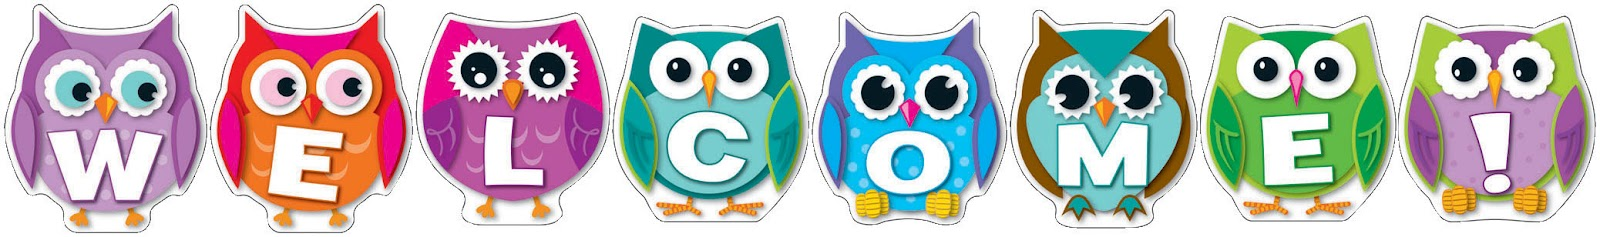 Owl clipart meeting Welcome Welcome Clipart Owl Download